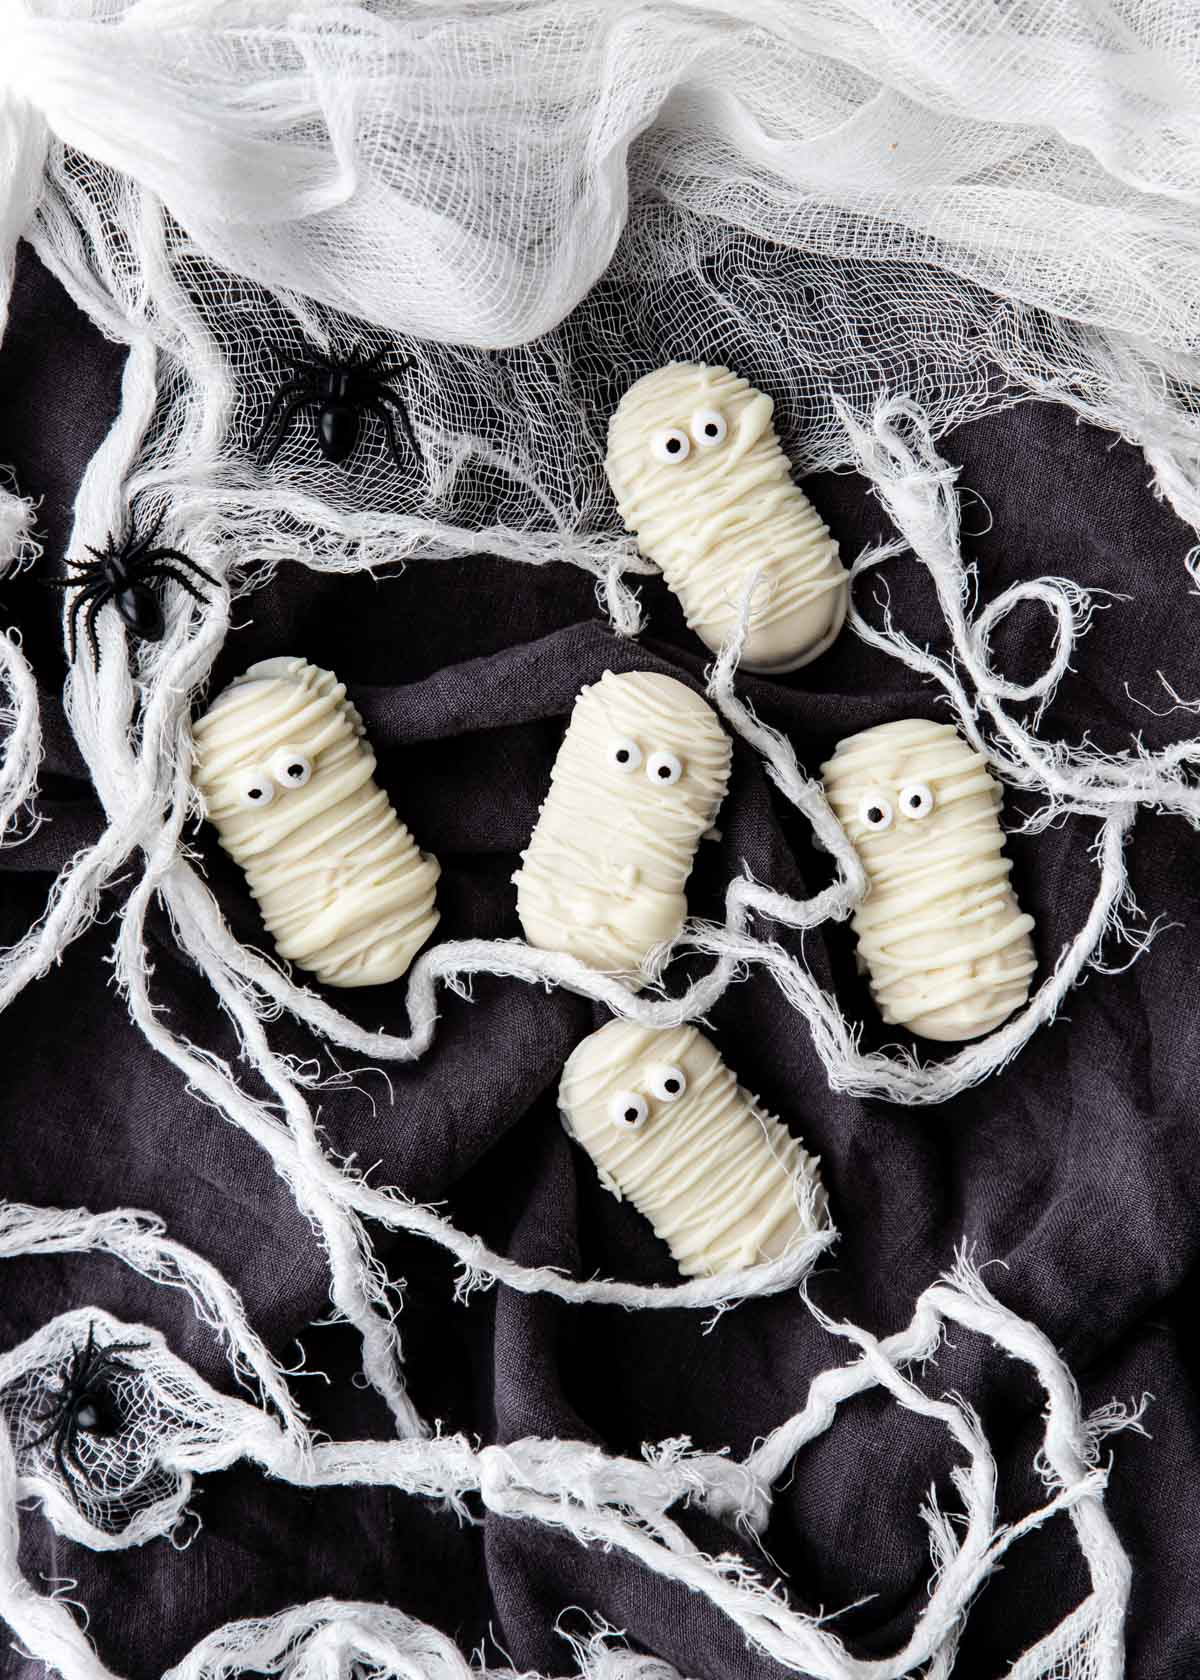 Mummy Cookies on a black surface with gauze around